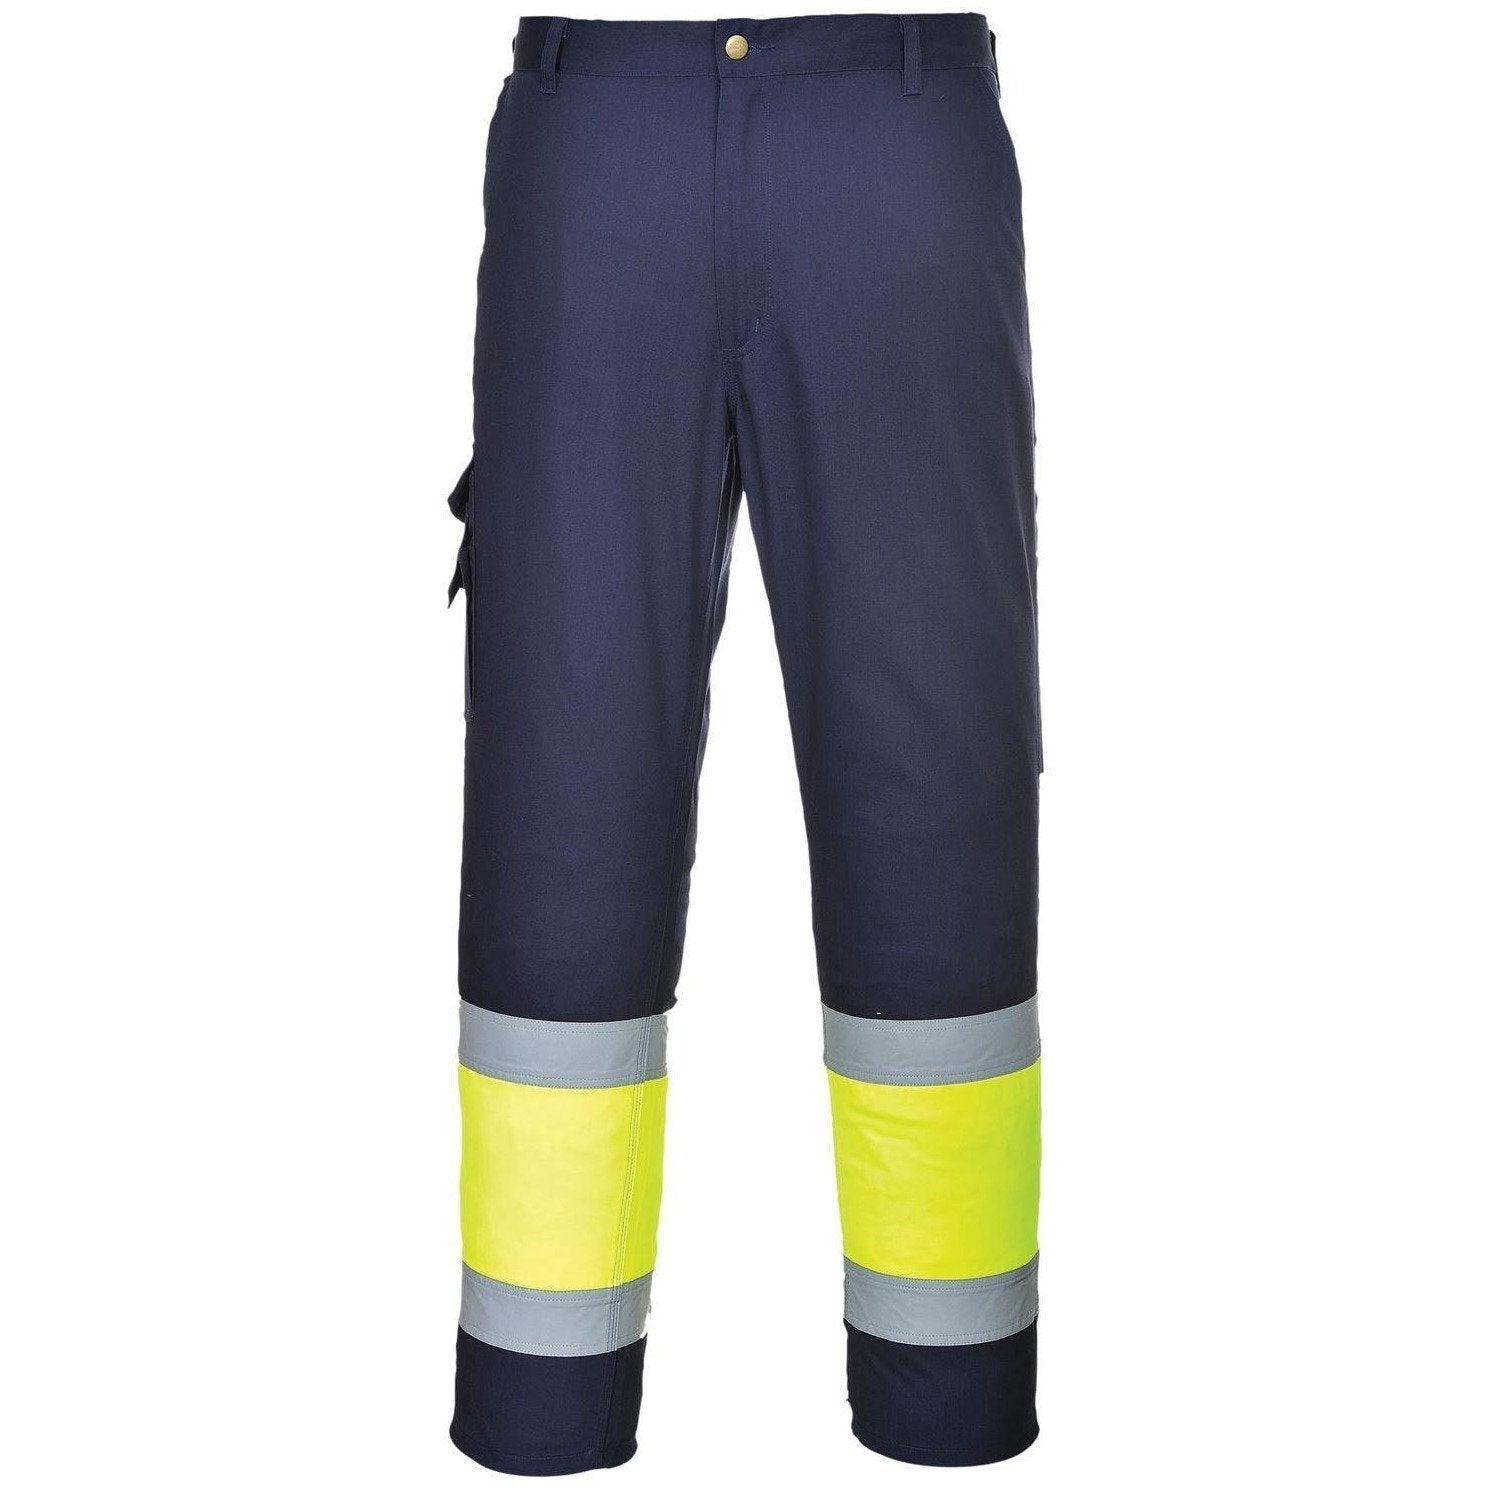 Portwest Hi-Vis Two Tone Combat Trousers E049 - reid outdoors